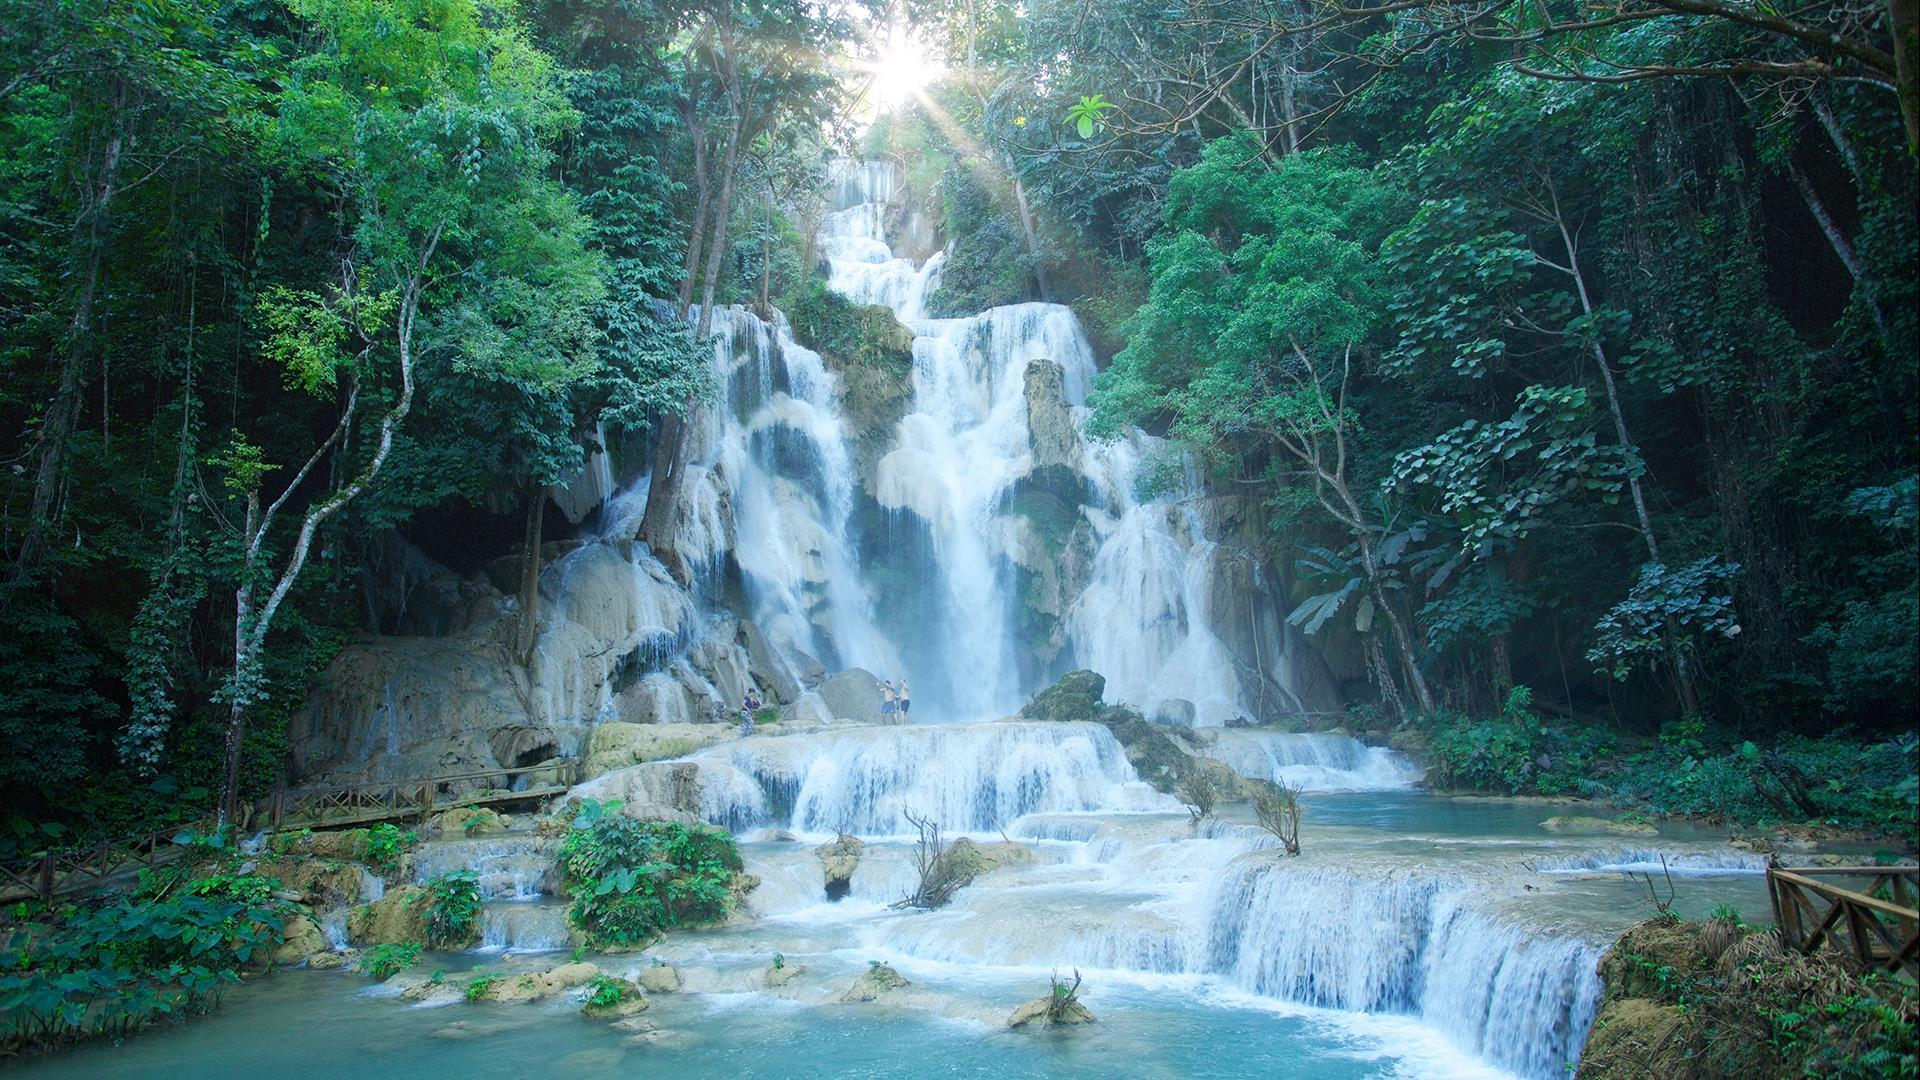 laos-luang-prabang-tat-kuang-si-waterfall-photo-by-cyril-eberle-ceb_4304